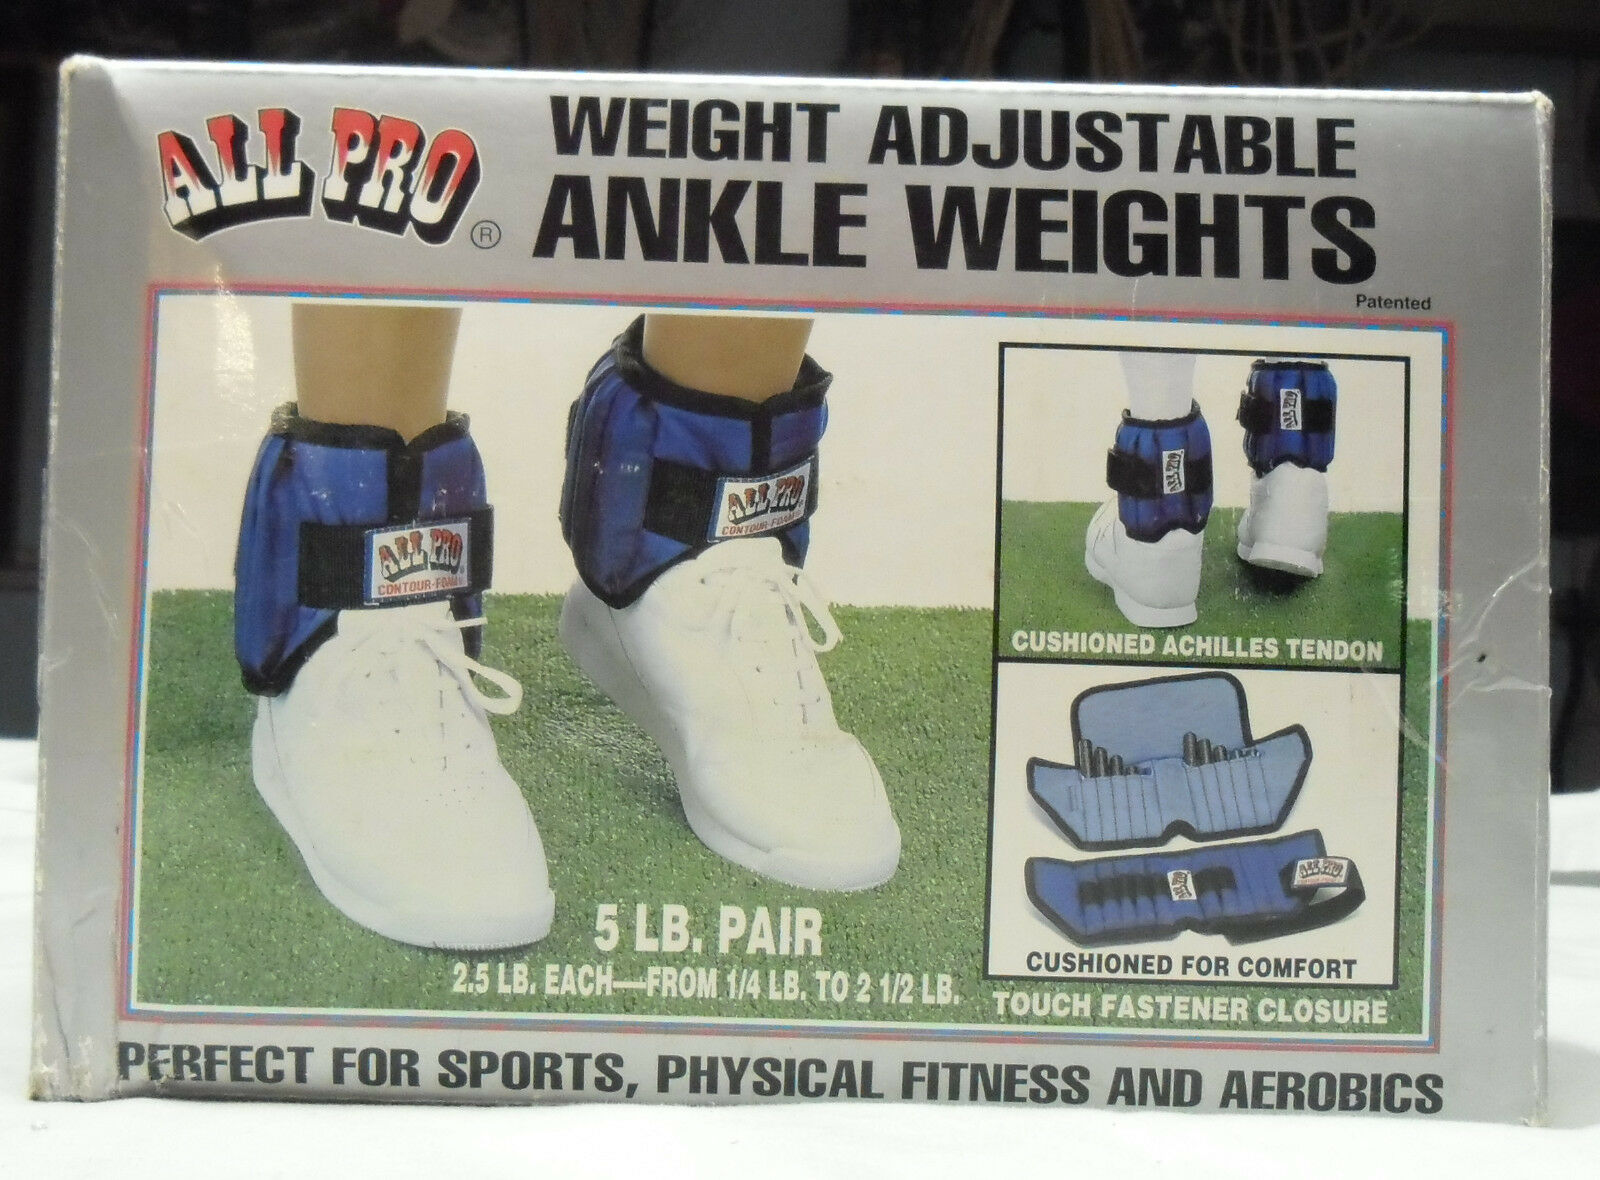 All Pro 5-lb Ankle Weights 4oz Incremetally Adjustable to 2.5-lbs each ankle